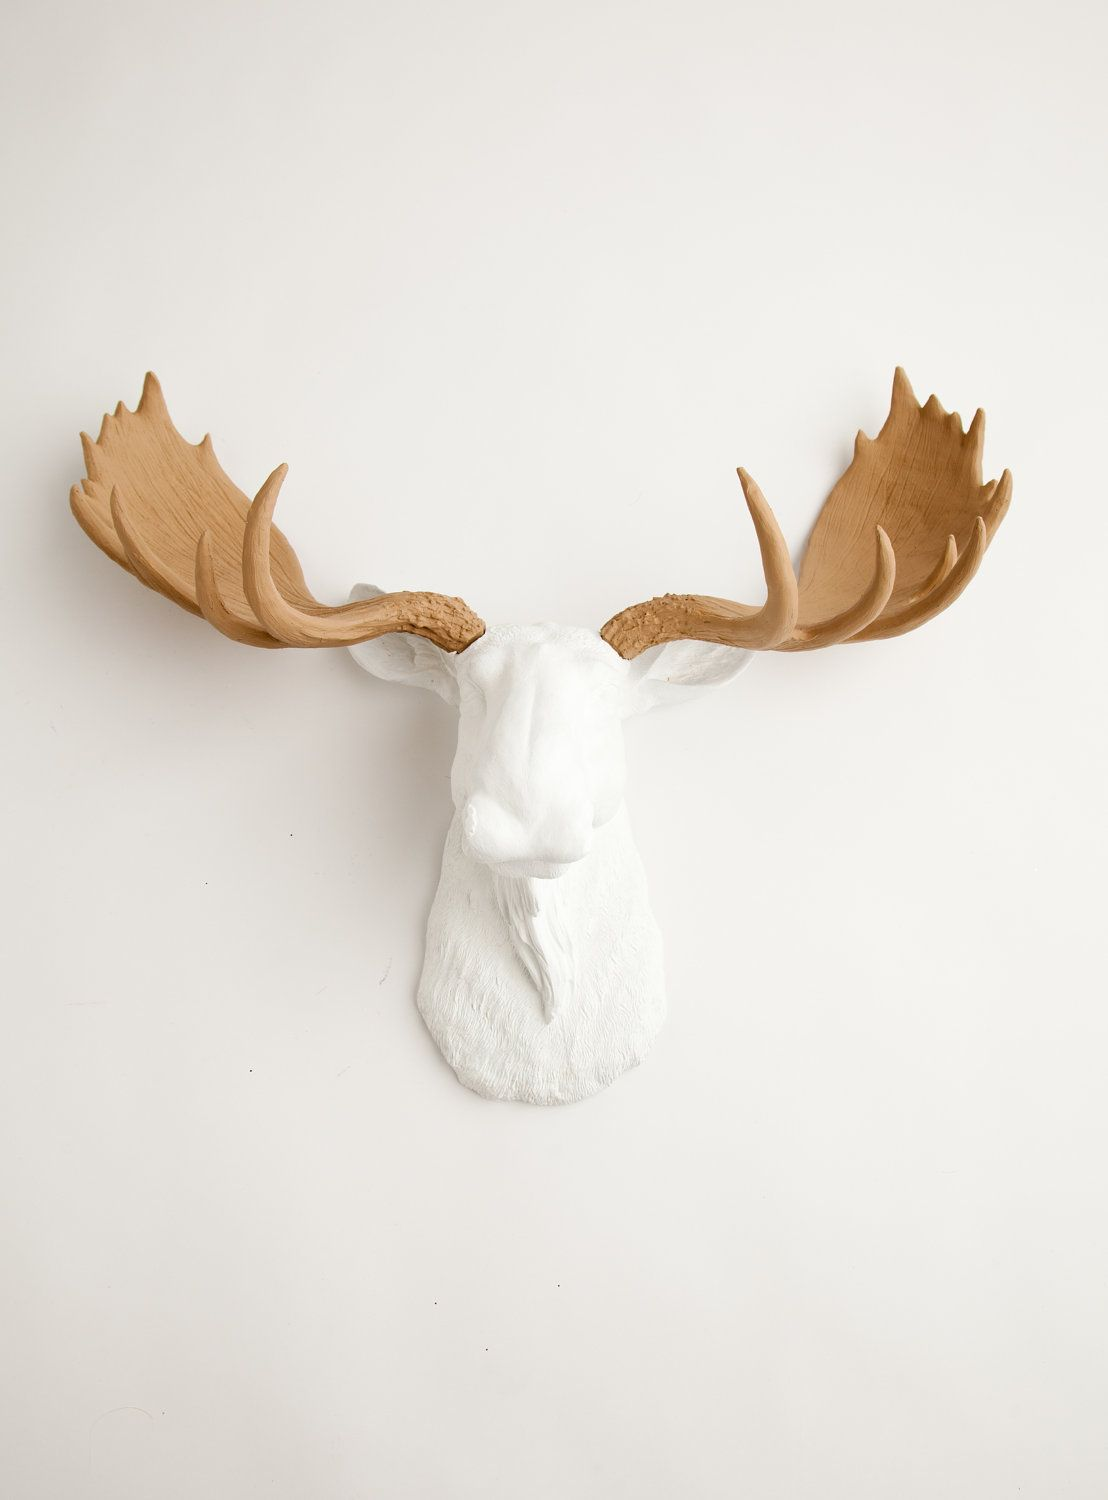 Faux Taxidermied The Adolpho White W Tan Antlers Resin Moose Head Moose Resin White Faux Taxidermy Chic Moose Head Faux Taxidermy Moose Animal